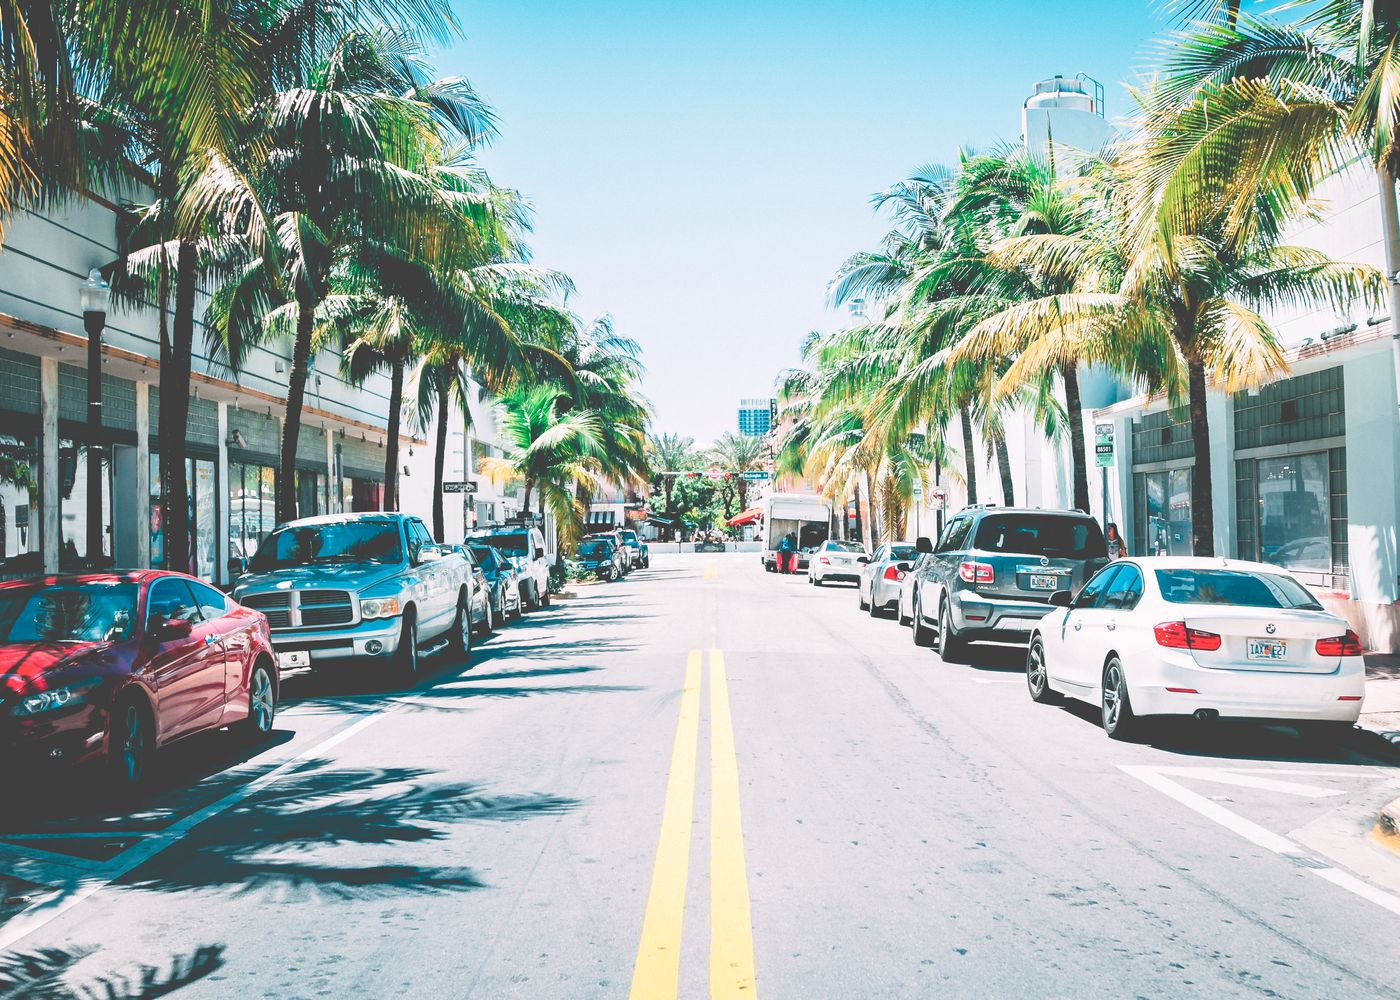 South Beach Street - Miami